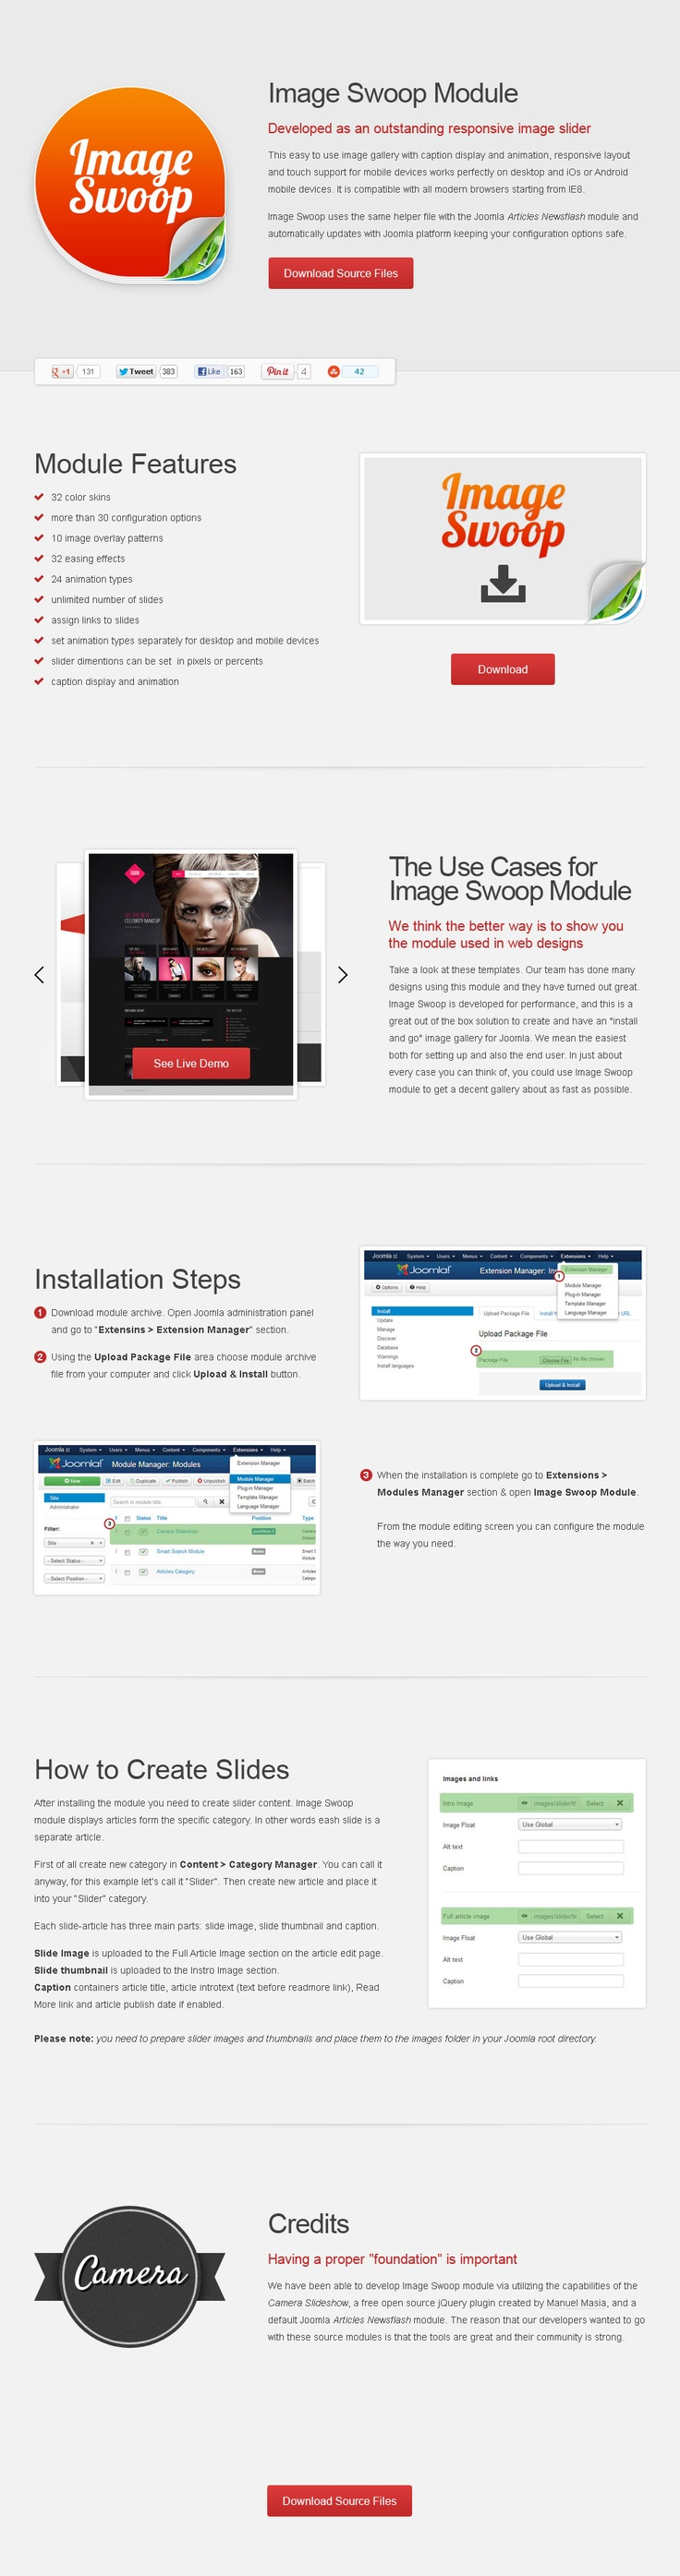 The time to wow is now. Style up images your way with Image Swoop – a new responsive image slider for Joomla (download source files in a click) http://www.templatemonster.com/presentations/image-swoop-module-joomla.php